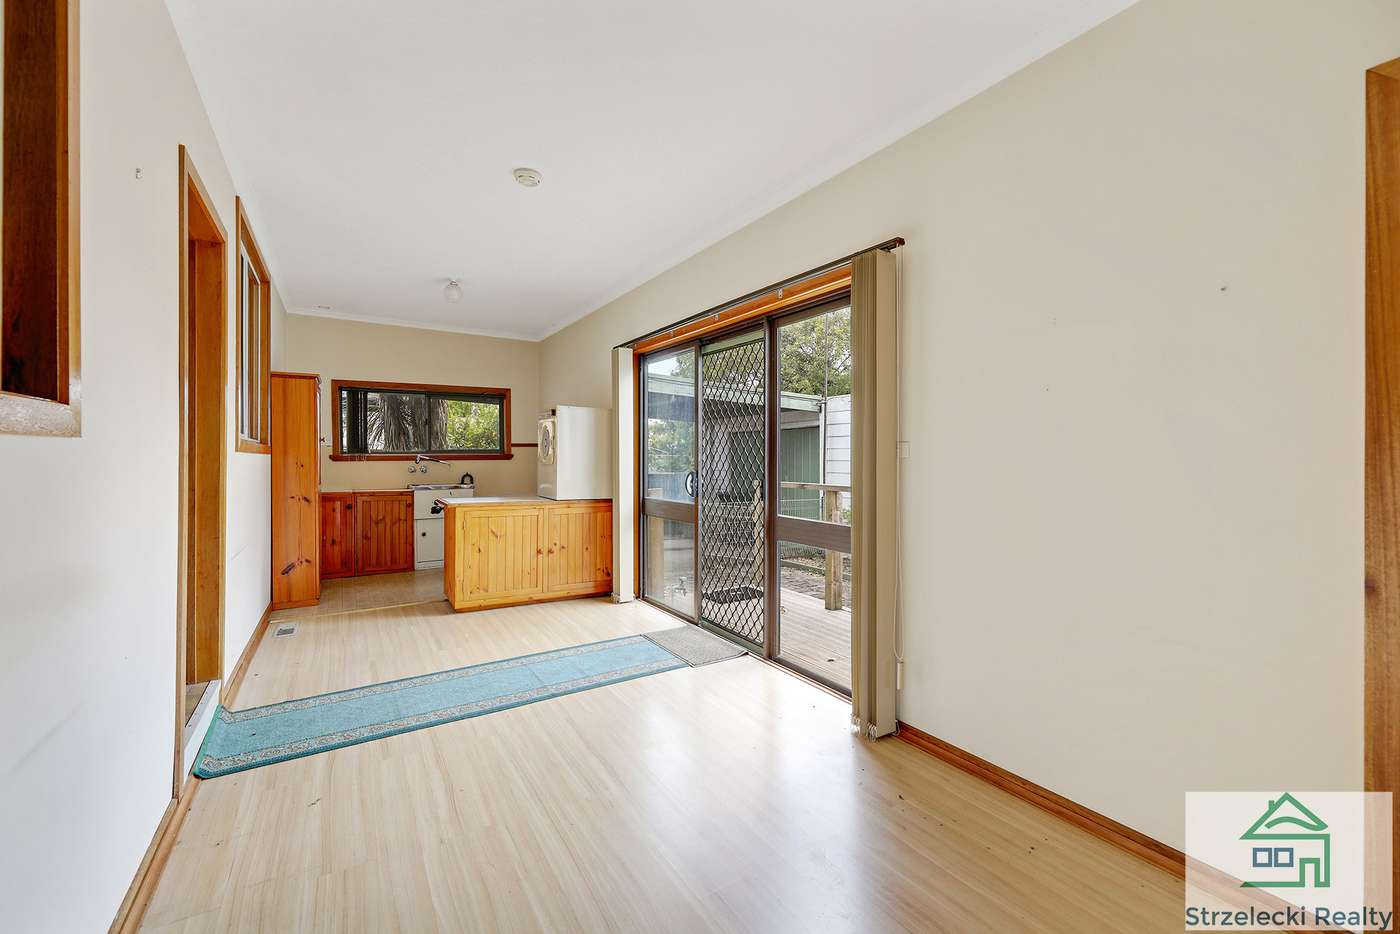 Sixth view of Homely house listing, 48 Ashby St, Trafalgar VIC 3824